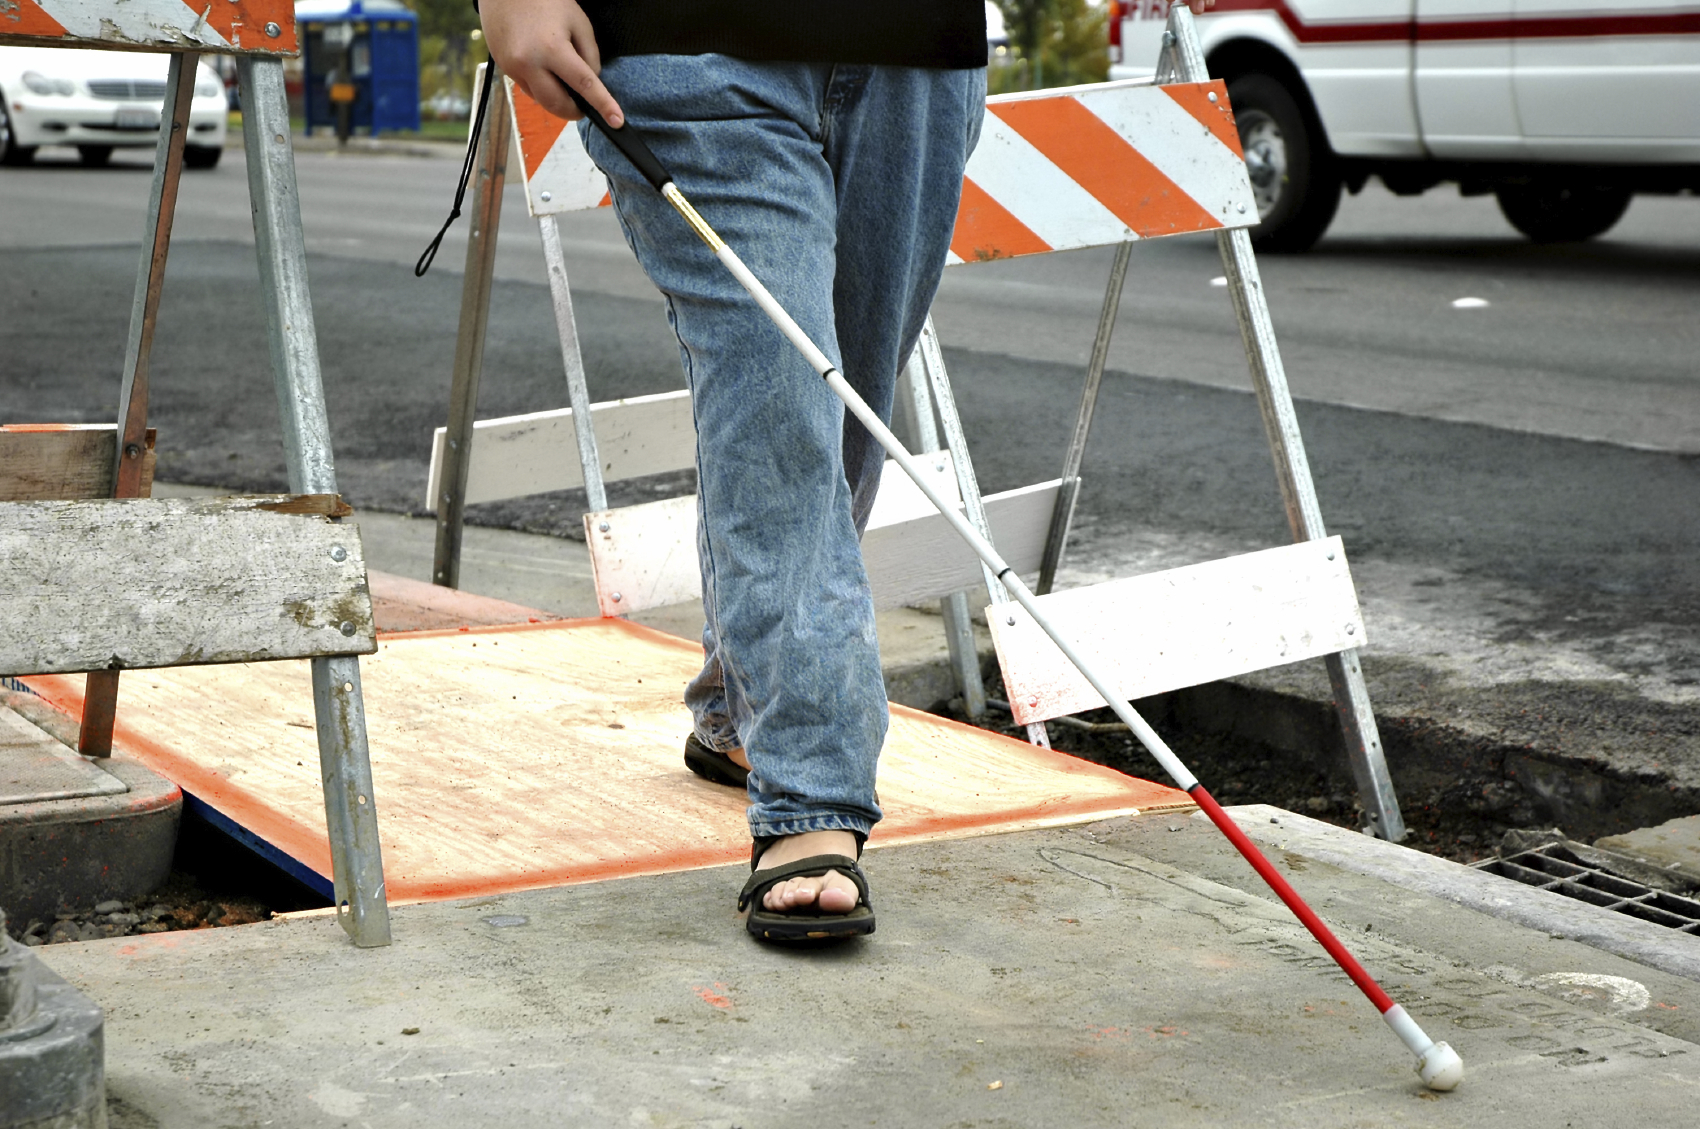 A man uses a white cane to navigates through construction on a sidewalk